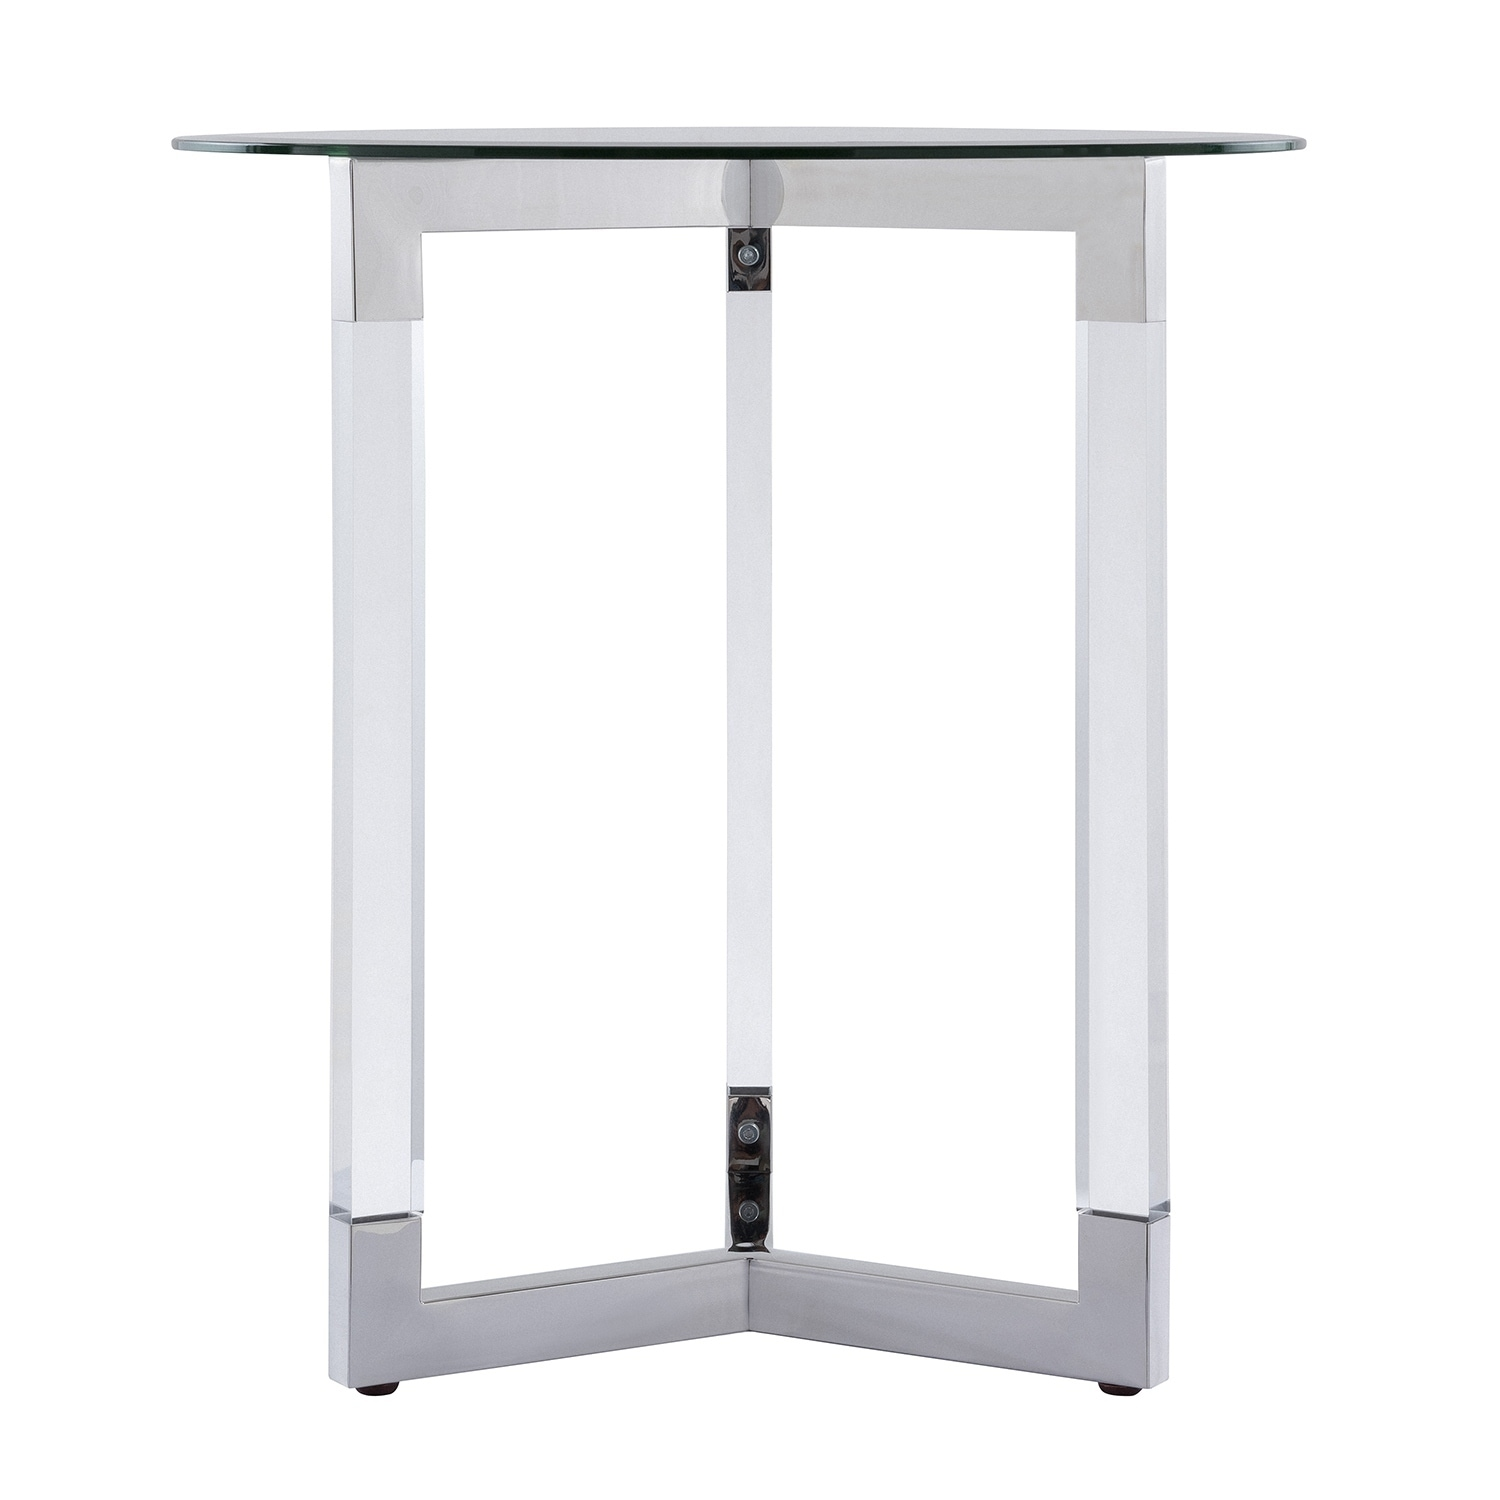 harper blvd dauphine round acrylic accent table with glass top free shipping today slim end tables target kidney side outdoor patio seating rectangle umbrella adjustable height